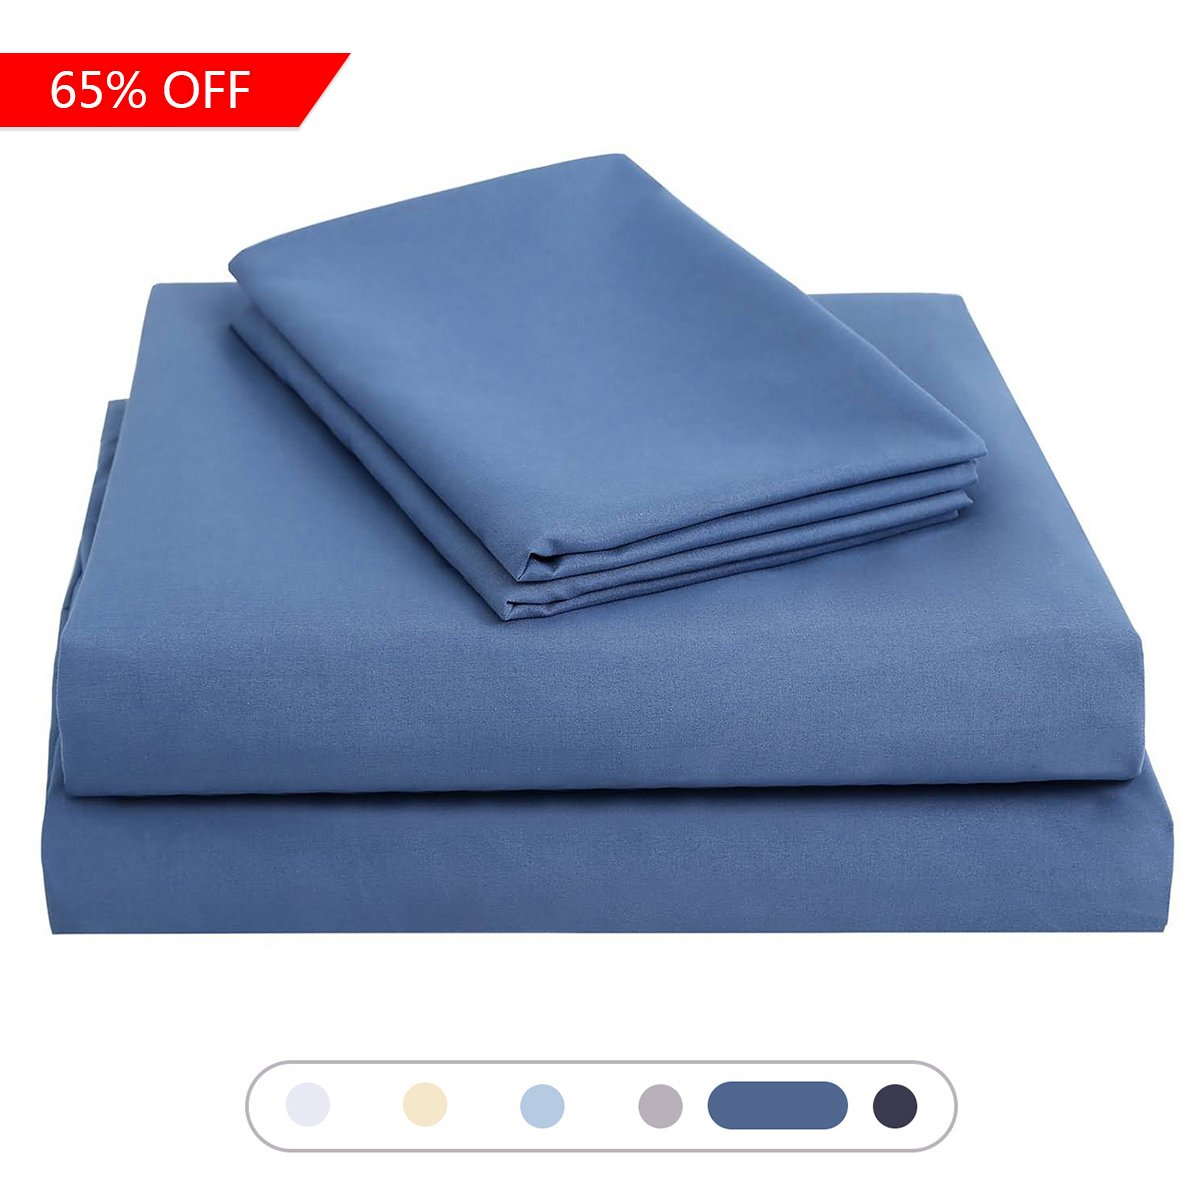 ASHENGVER Bed Sheet Set - 110 GSM Polyester Microfiber Wrinkle, Fade, Stain Resistant - Navy Blue Twin Sheet Sets-(1 Flat Sheet, 1 Fitted Sheet With Deep Pocket, 1 Pillowcase)